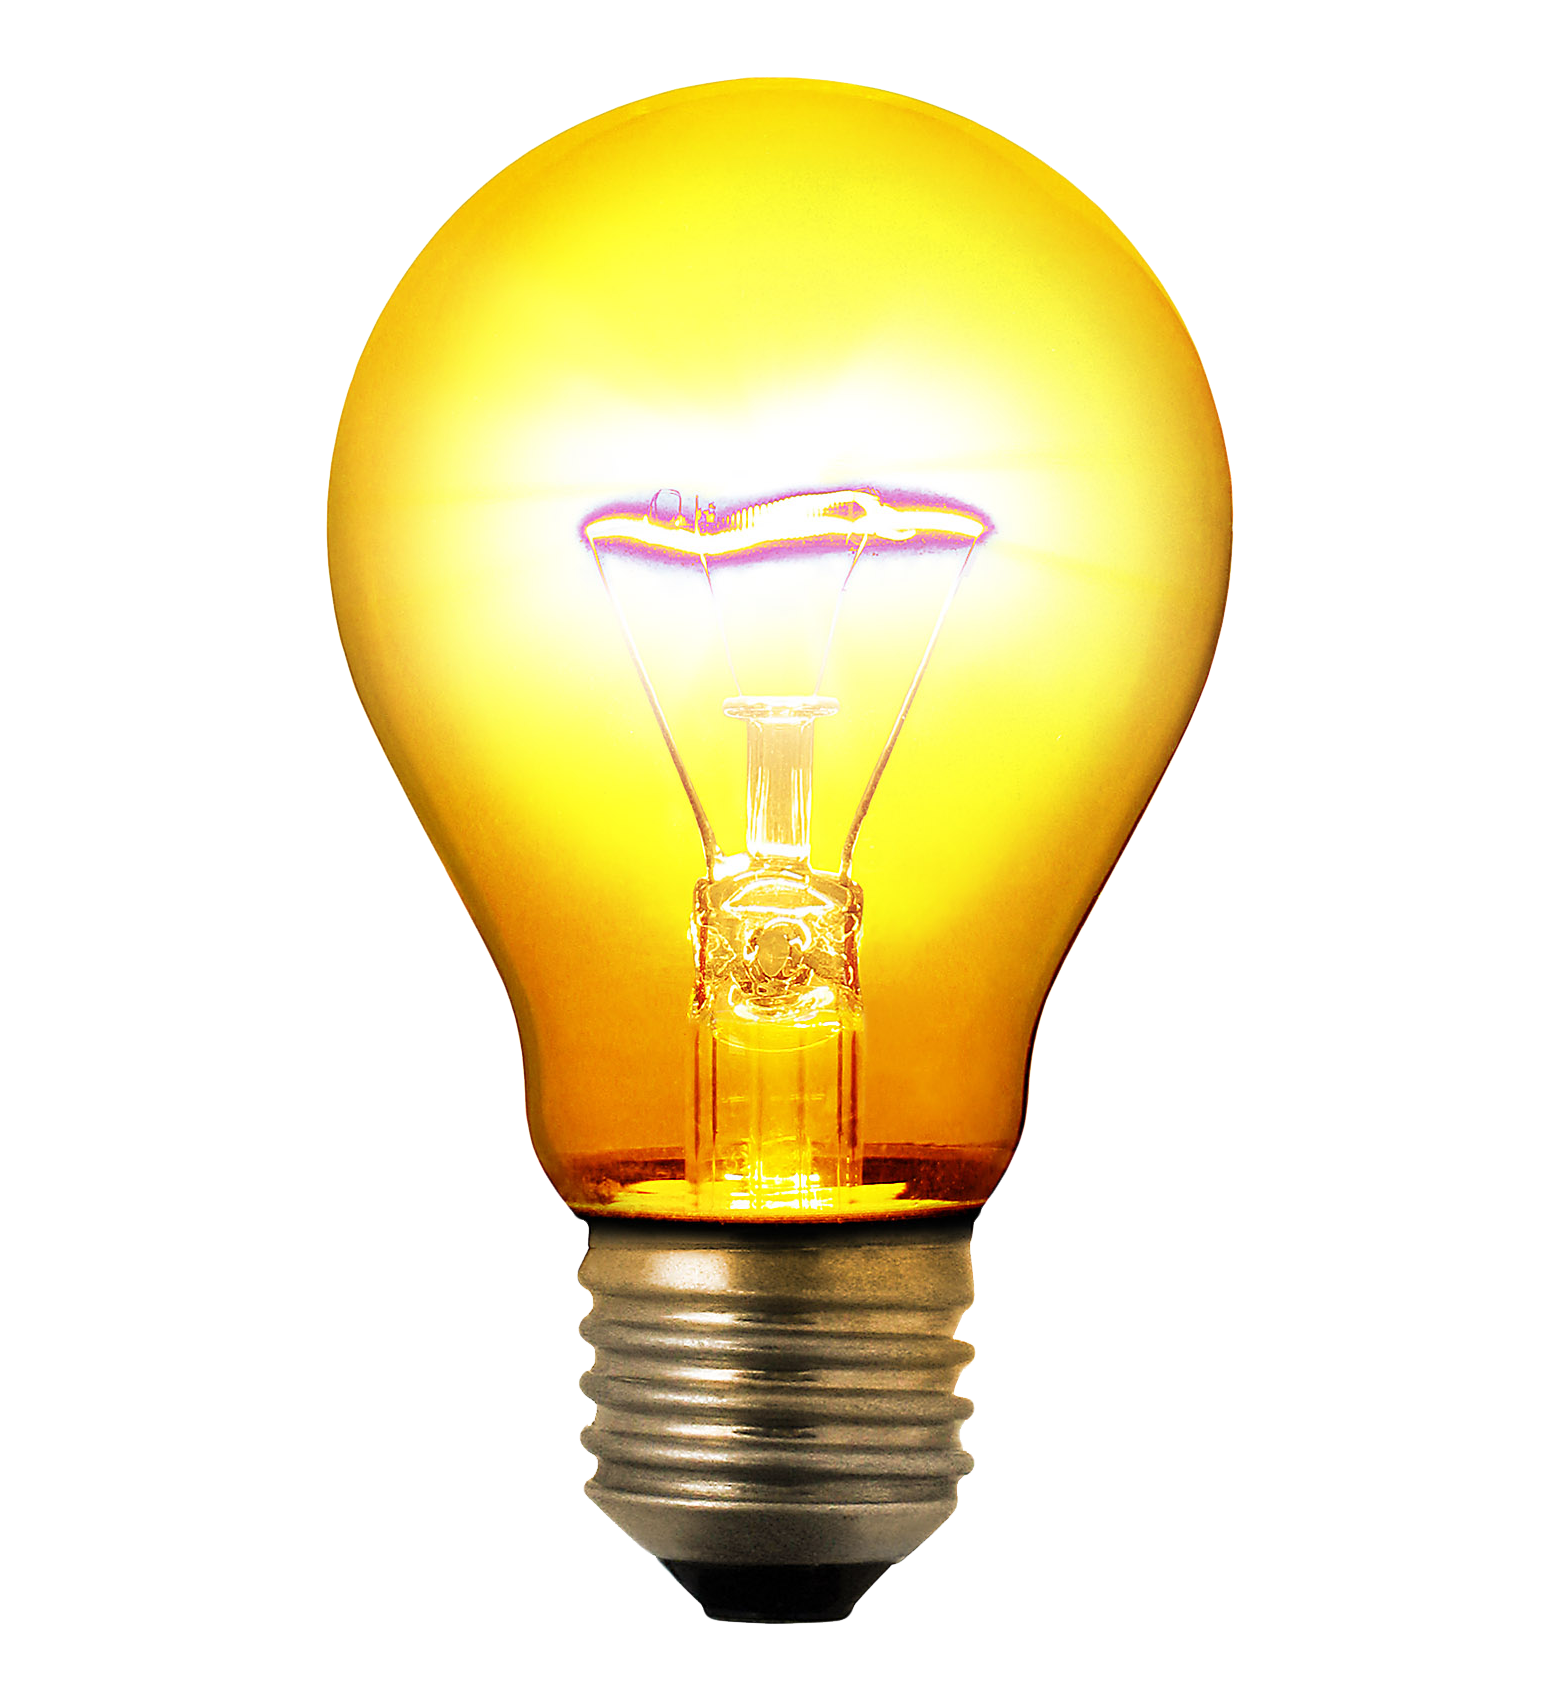 Light Bulb Png Transparent Image Pngpix